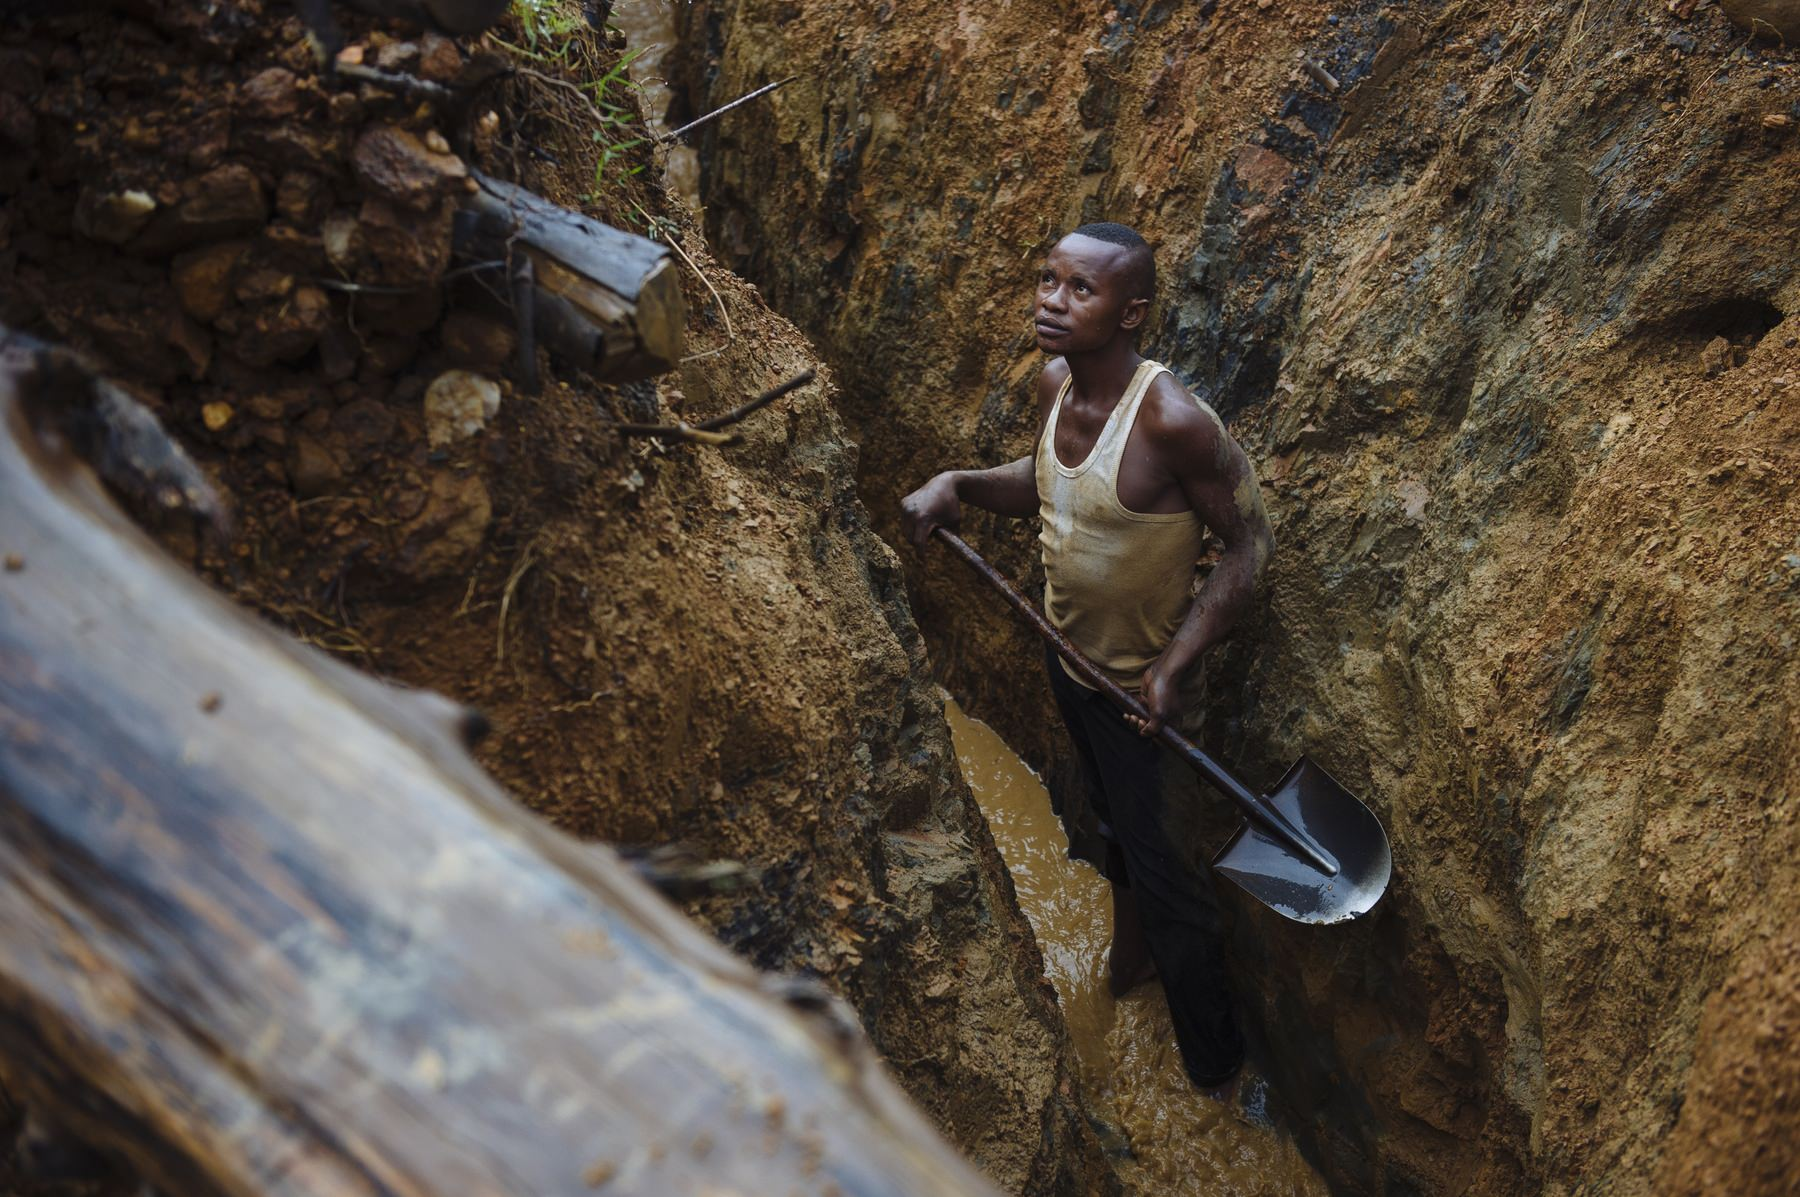 A digger works in a channel cutting through the Mufa II artisanal gold mining site in South Kivu, in the east of the Democratic Republic of the Congo on April 11, 2015. The site is not in an artisanal mining zone, so miners working here are technically doing so illegally.